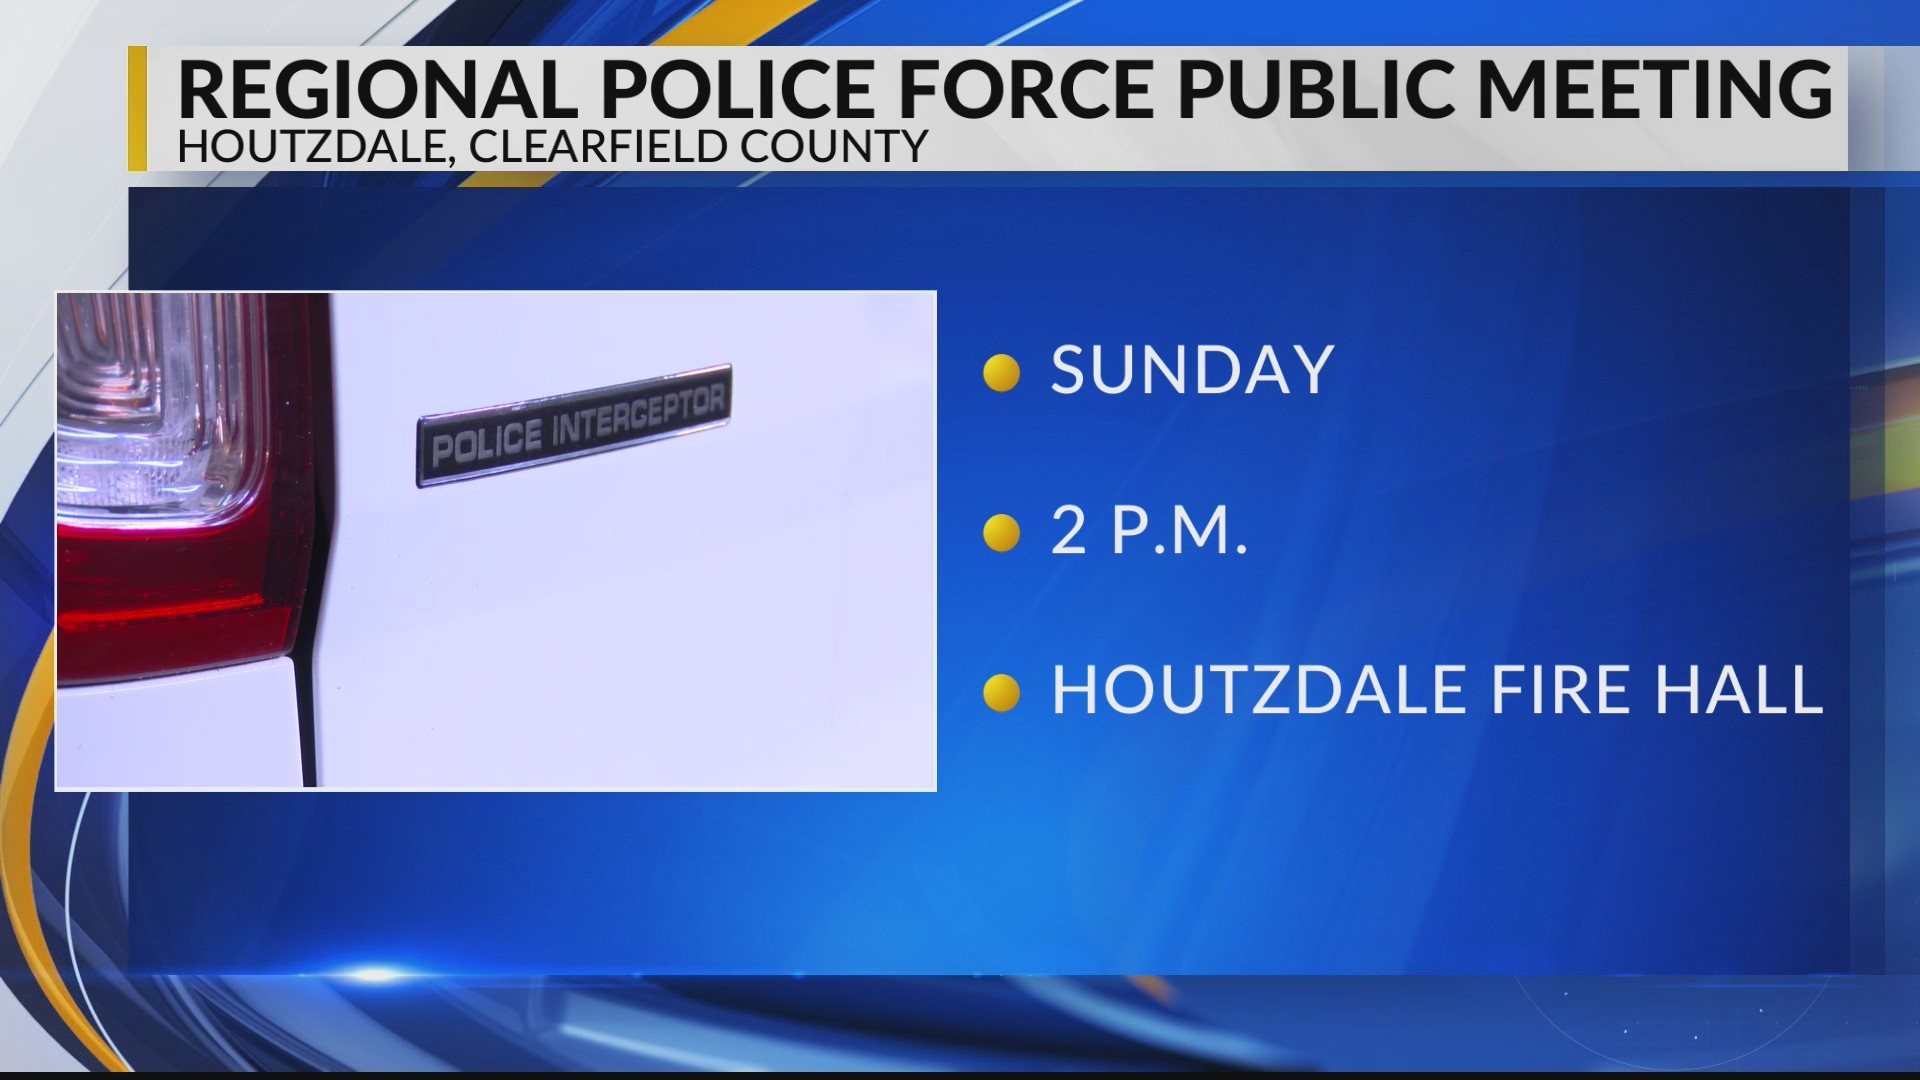 Houtzdale considers joining regional police force